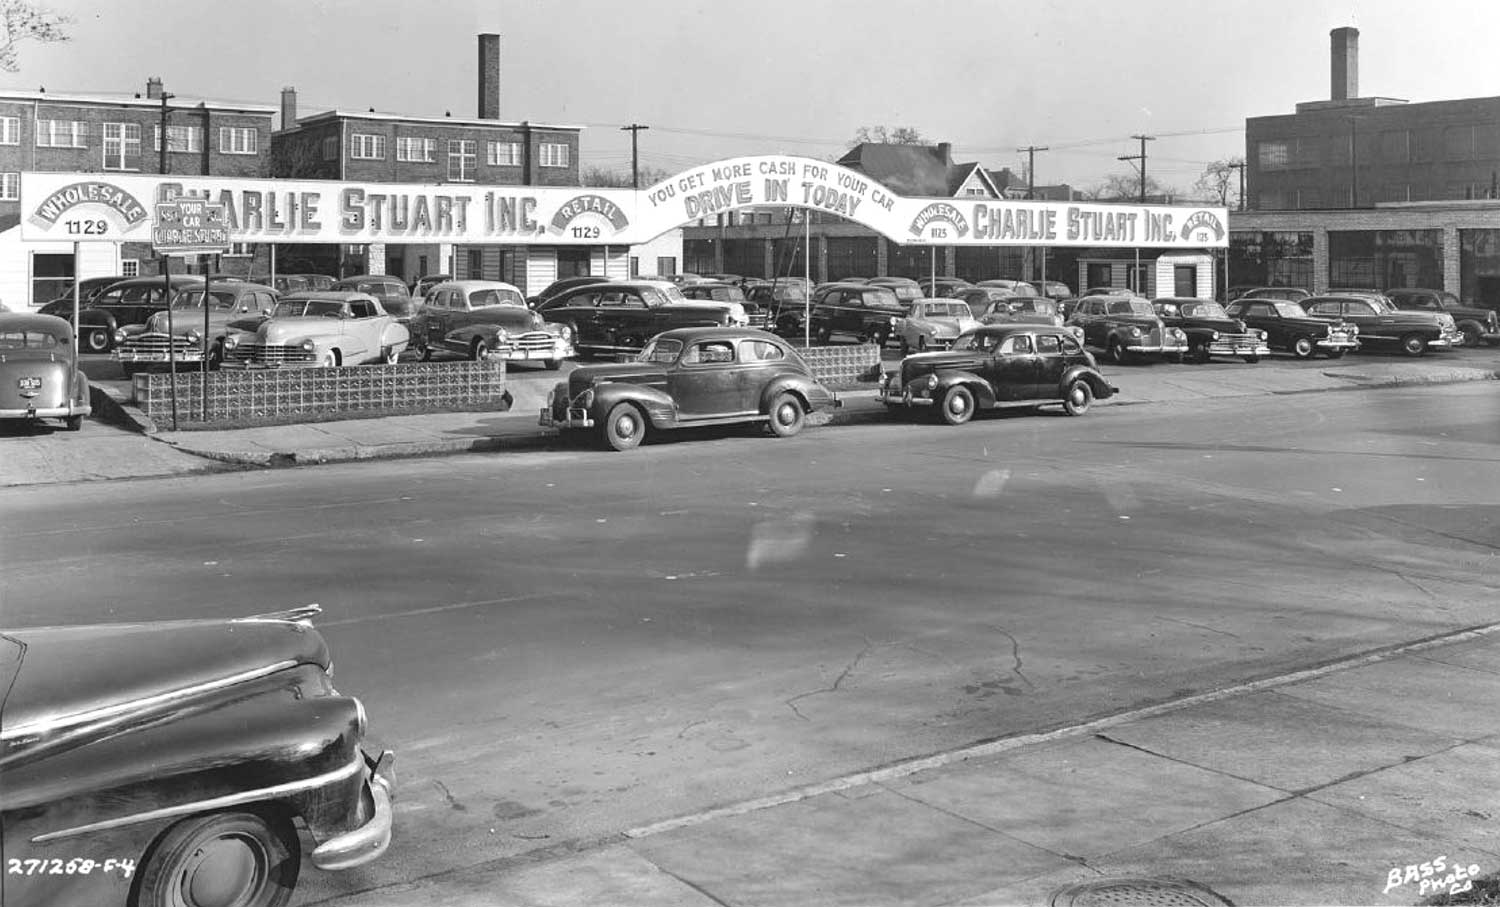 Indianapolis New Car Dealer Charlie Stuart Inc Used Car